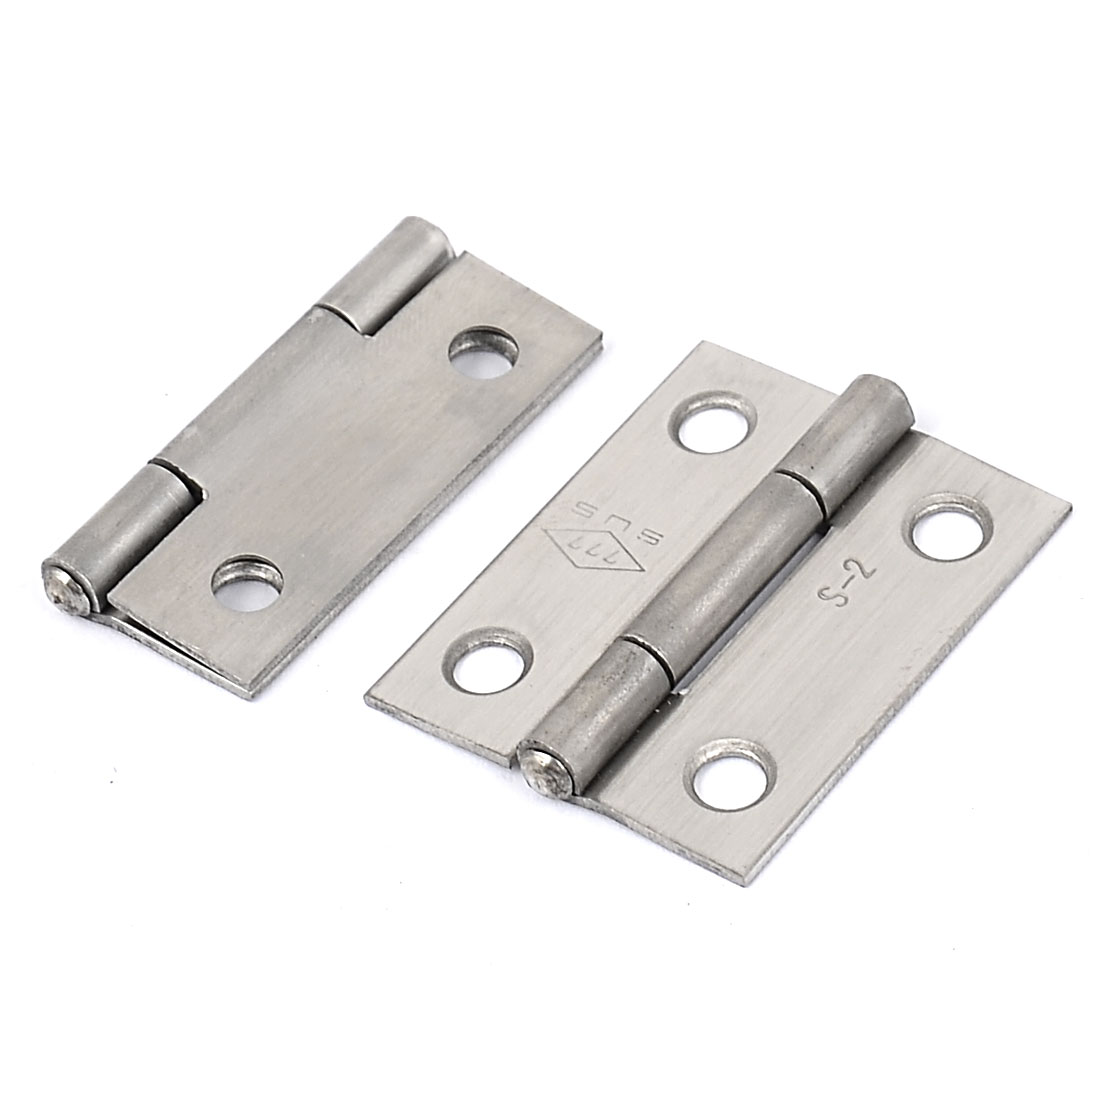 40mm x 30mm Stainless Steel Rotatable Folding Door Butt Hinges 2pcs